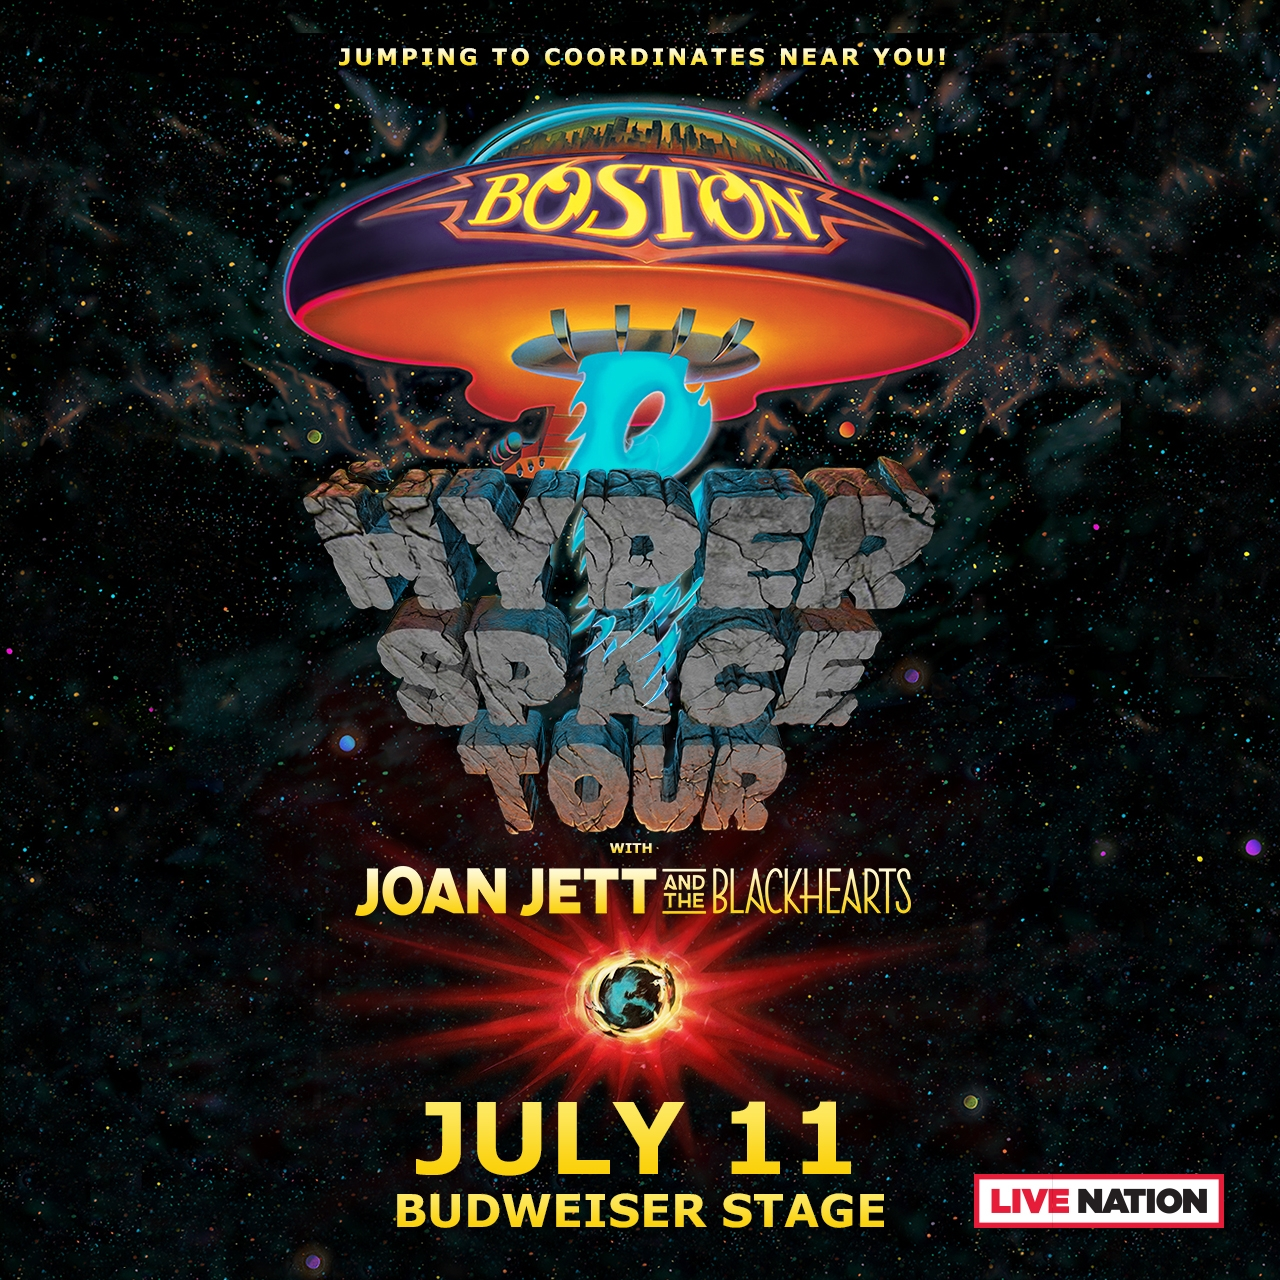 Boston with Joan Jett